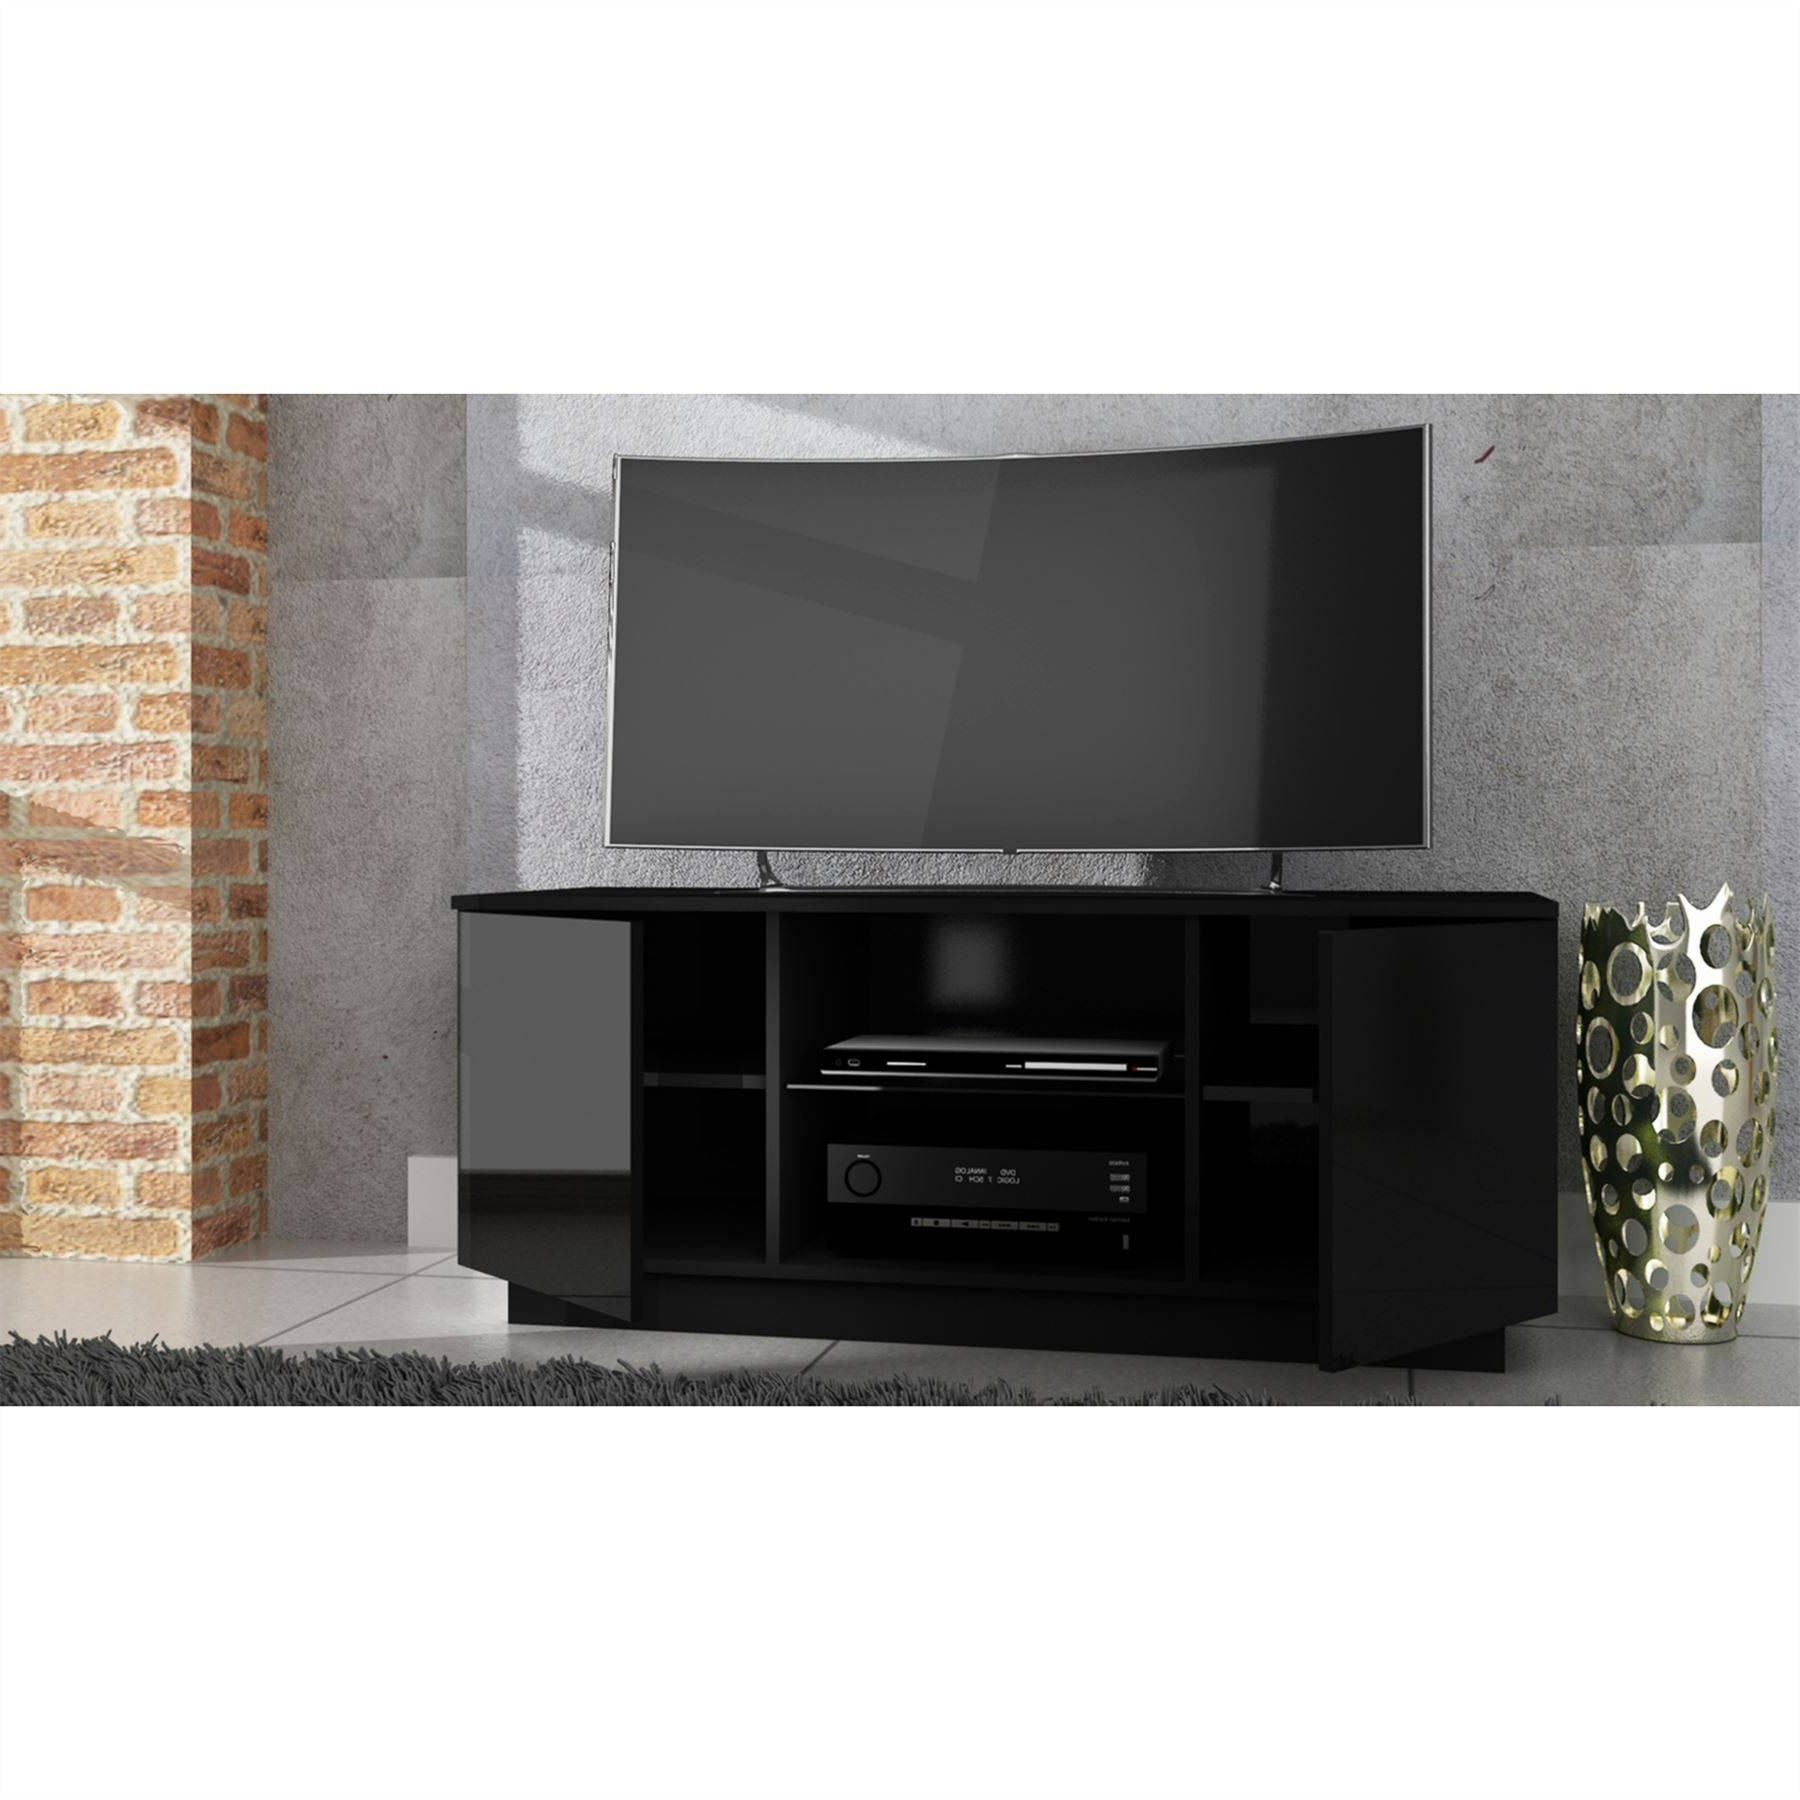 Wonderful Best 15 Of Black High Gloss Corner Tv Unit Elevated Tv With Regard To Most Current High Gloss Corner Tv Units (View 20 of 20)